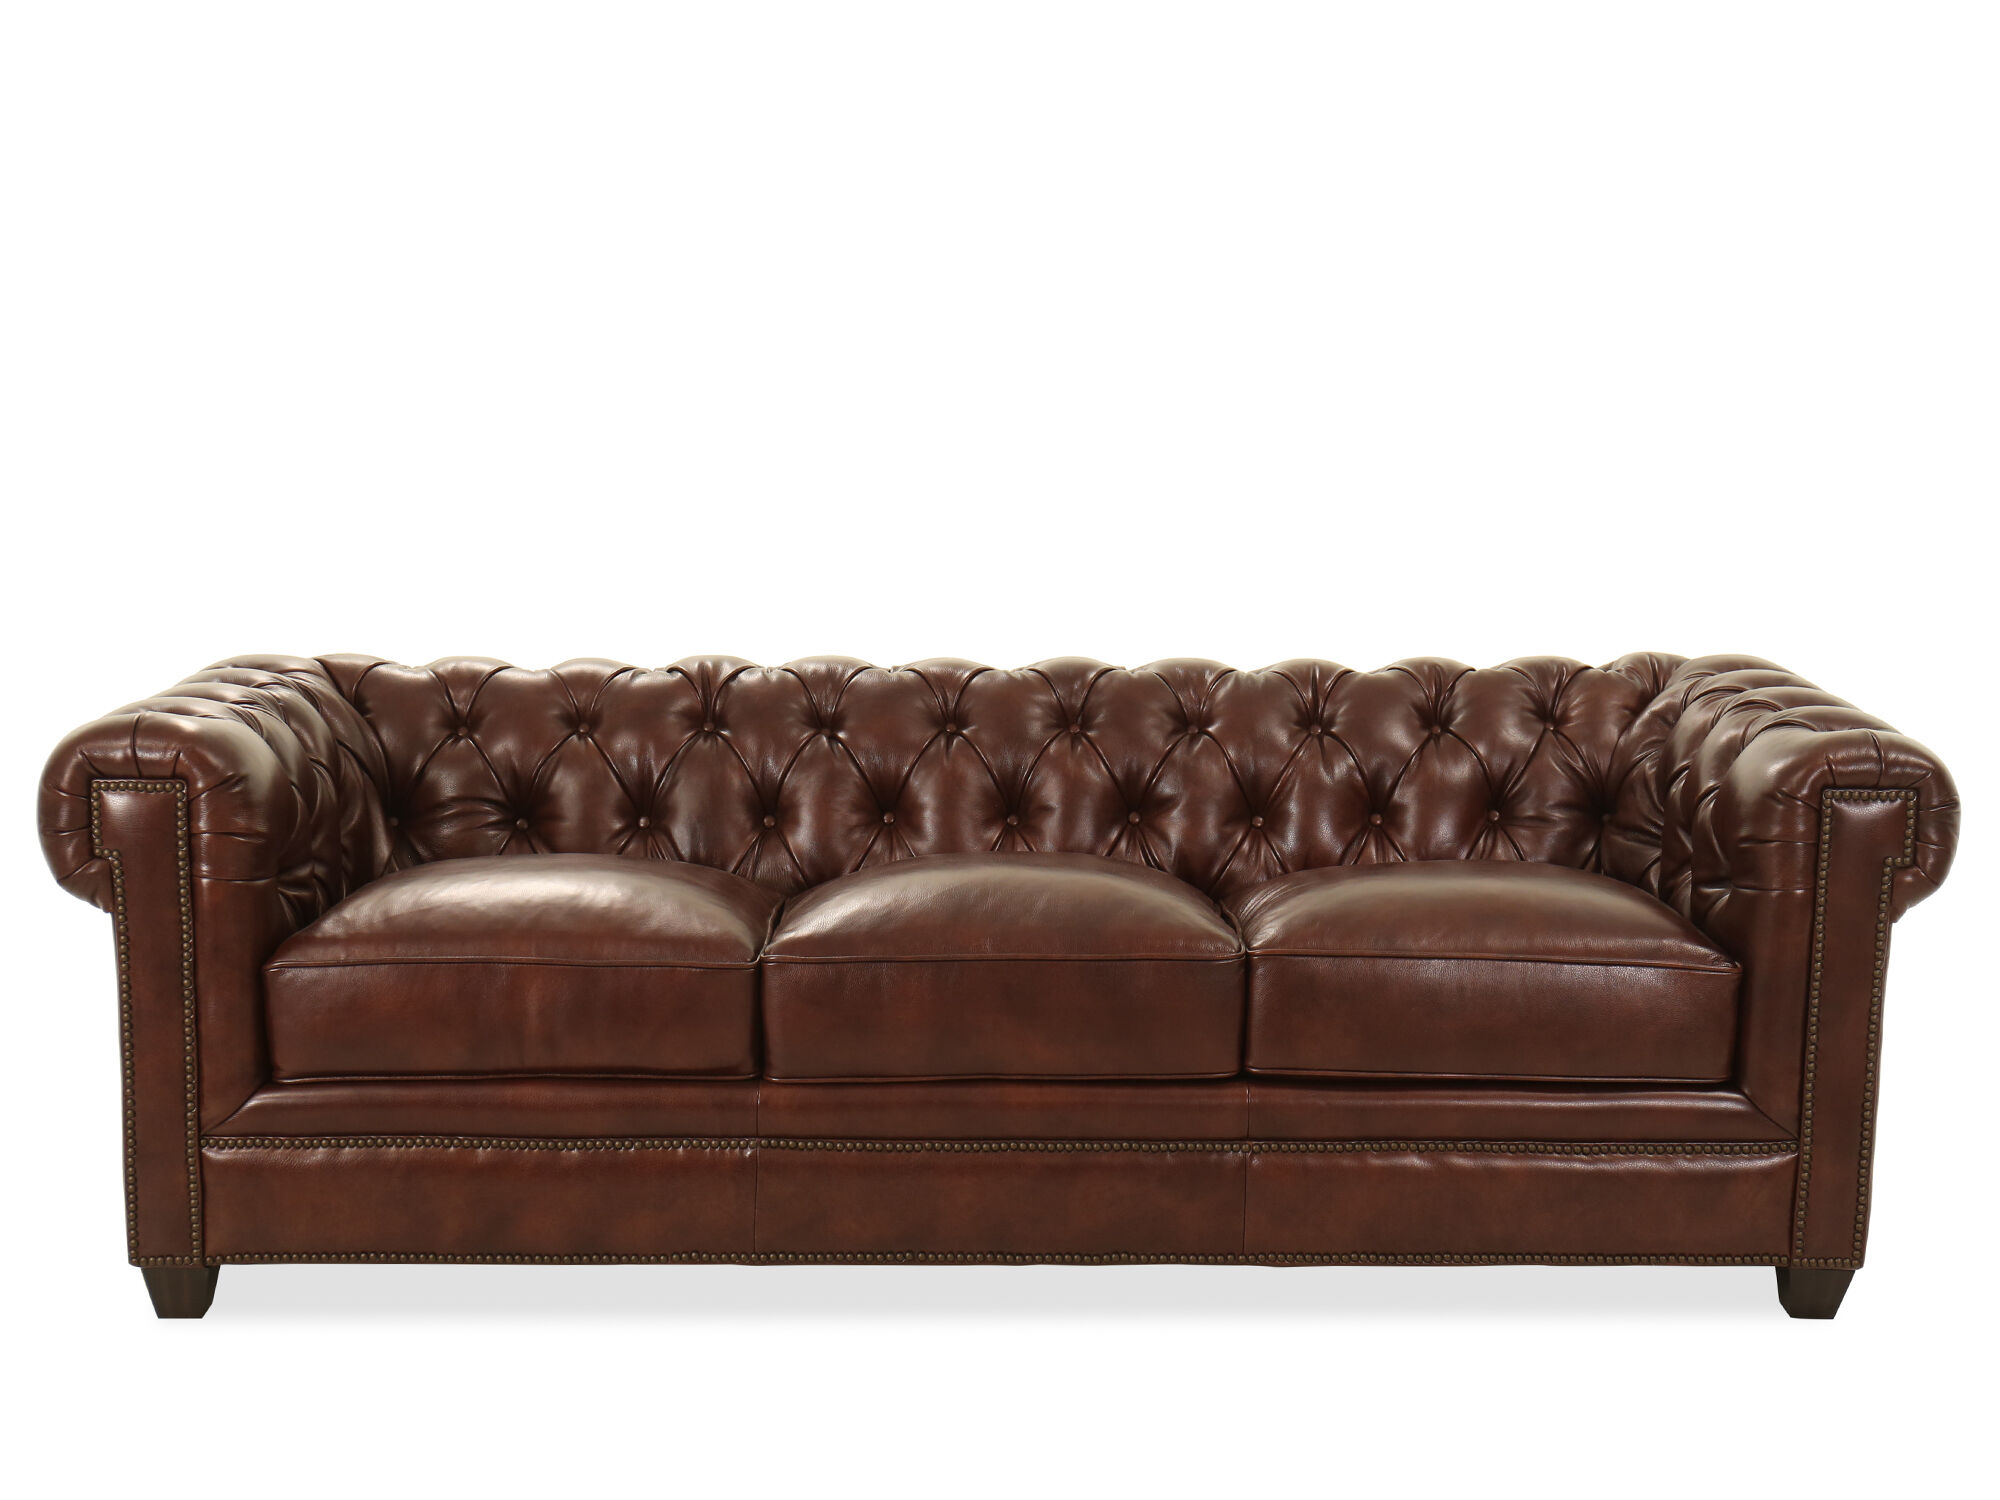 94u0026quot; Tufted Leather Chesterfield Sofa In Milano ...